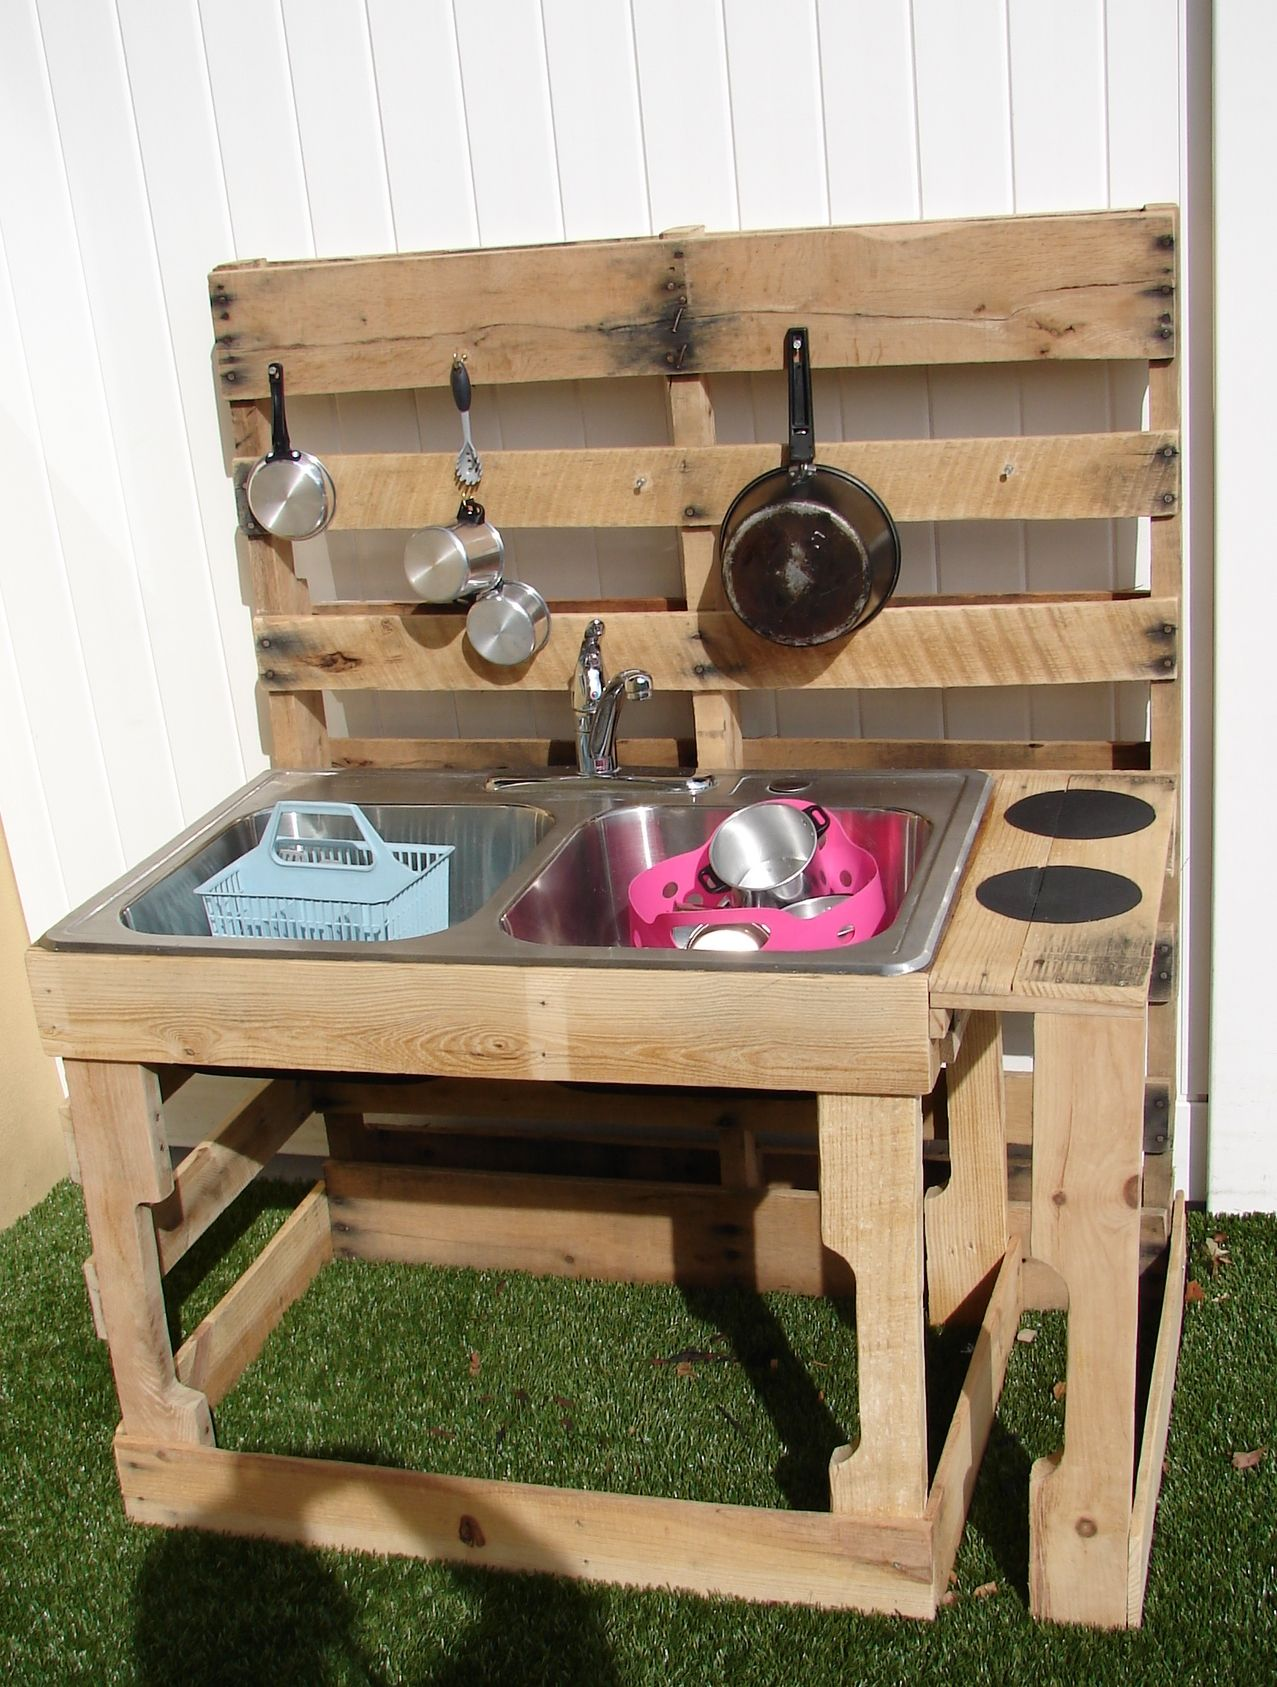 Pallet Outdoor Kitchen Bar Diy mud kitchen, Outdoor